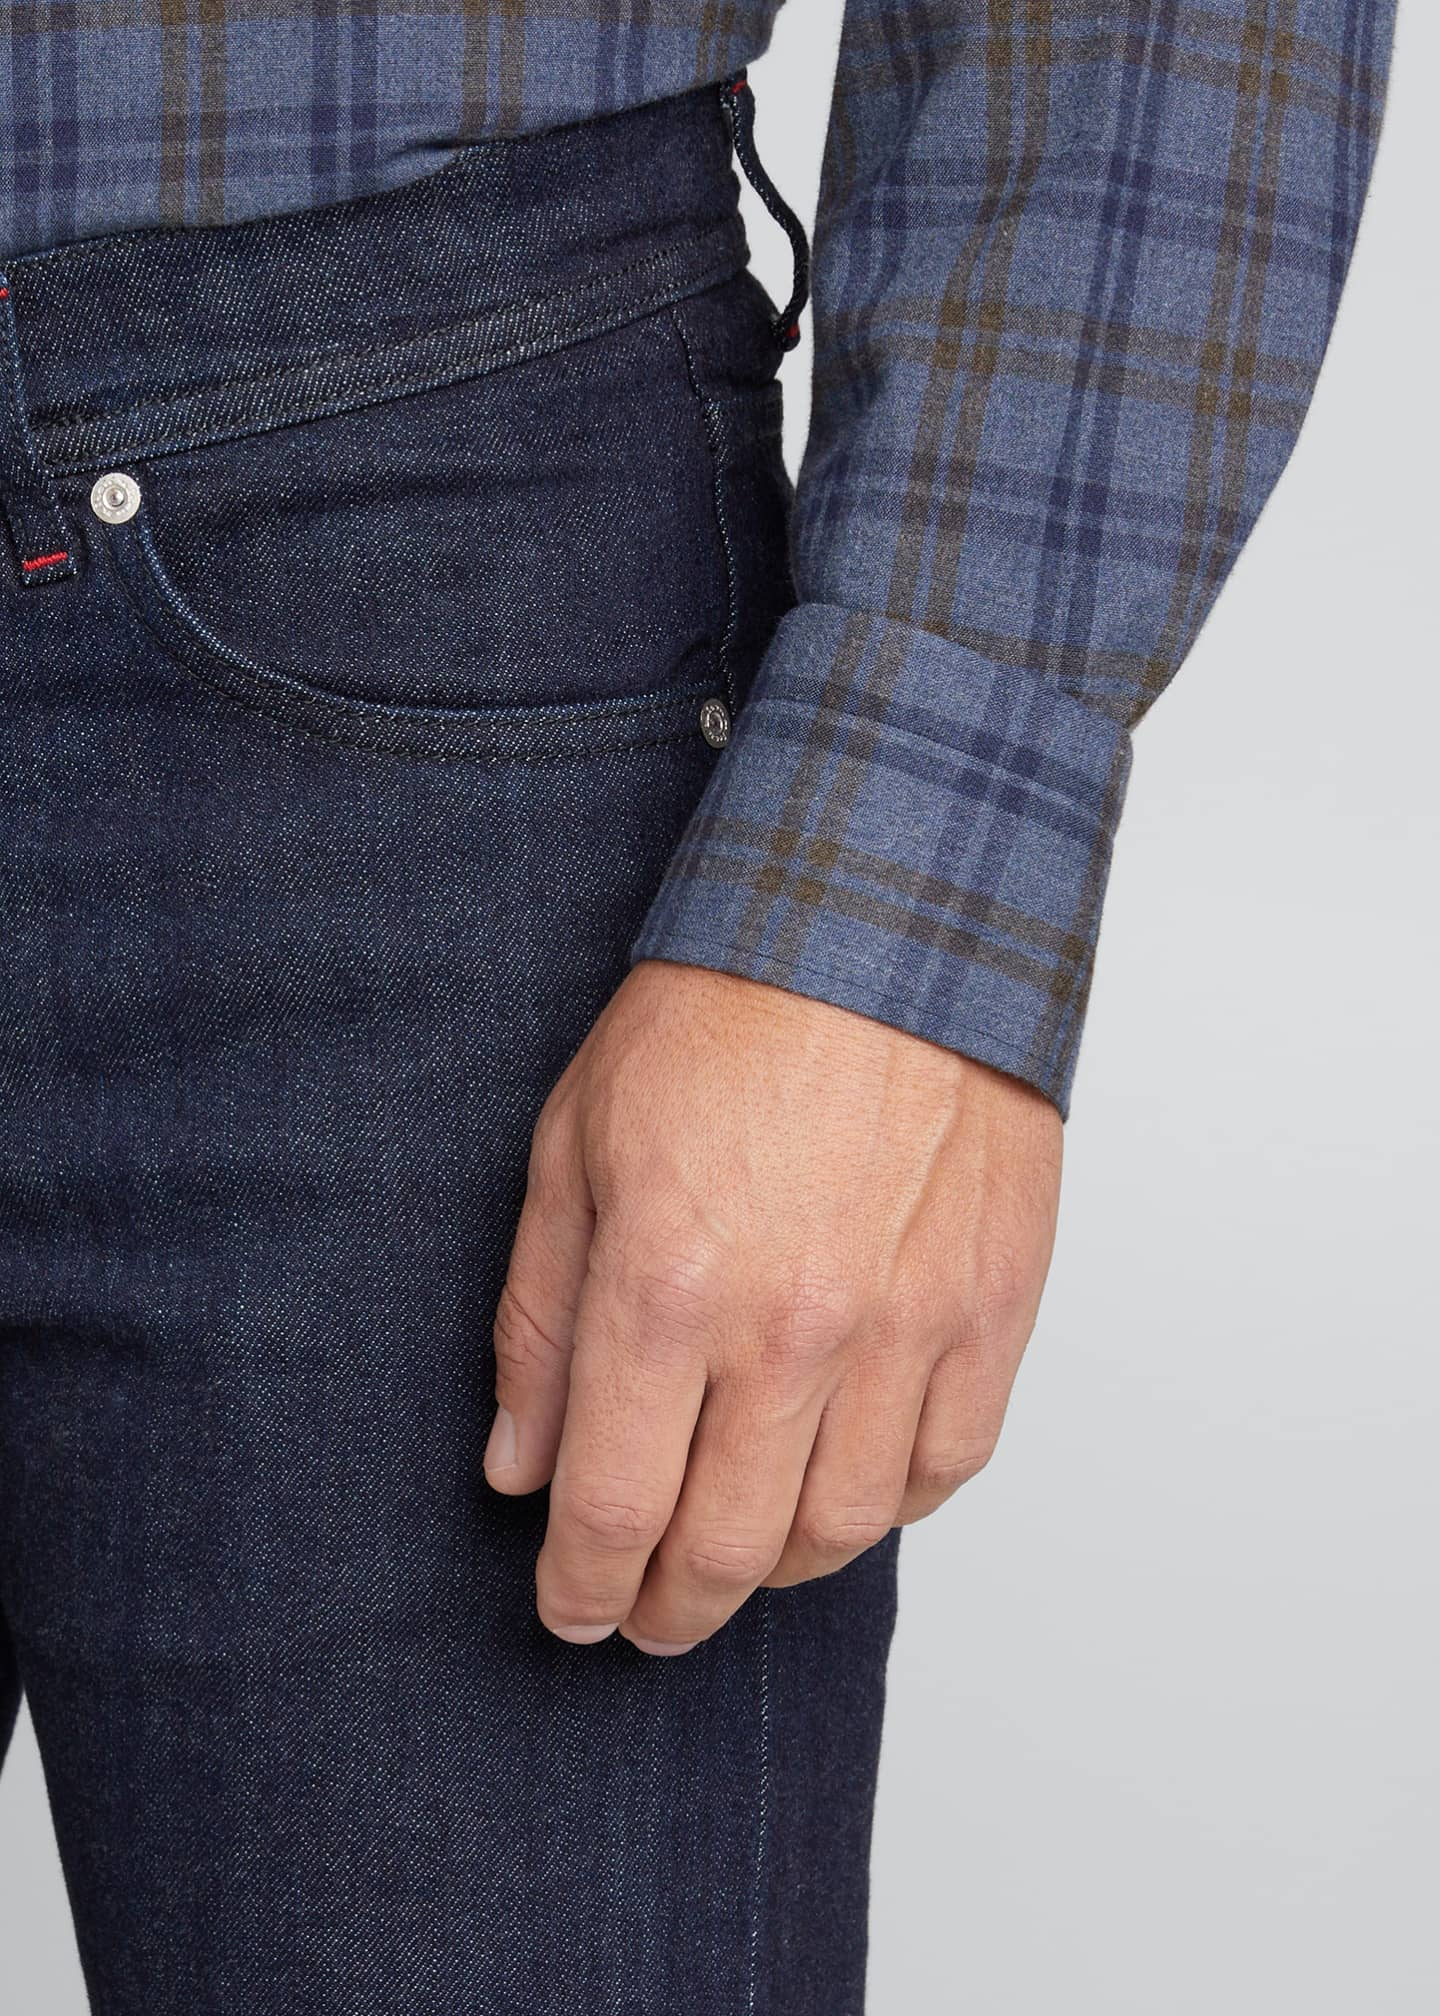 Image 4 of 4: Men's Classic Dark-Wash Jeans